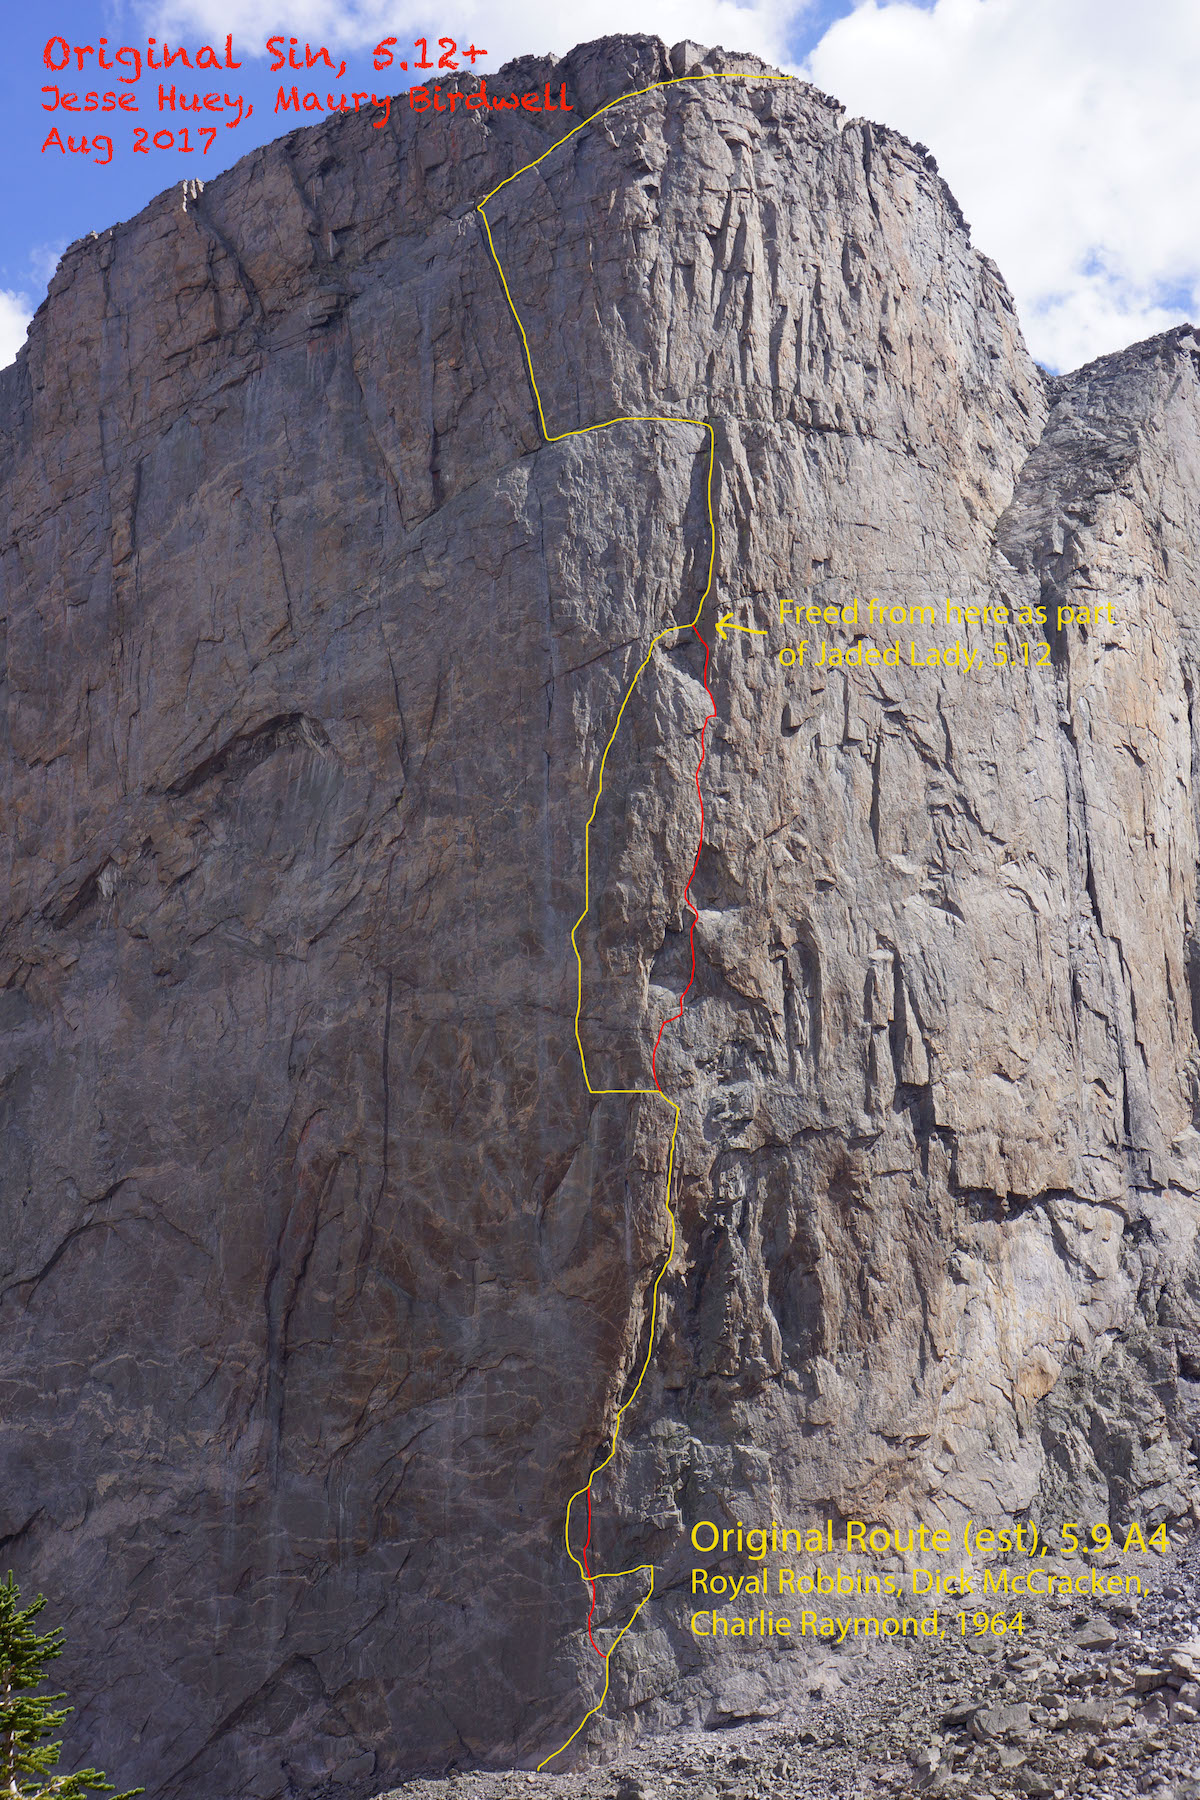 The yellow line shows the Original Route and the red lines mark the free variations of Original Sin. A route description and topo can be found here on MountainProject.com. [Image] Maury Birdwell